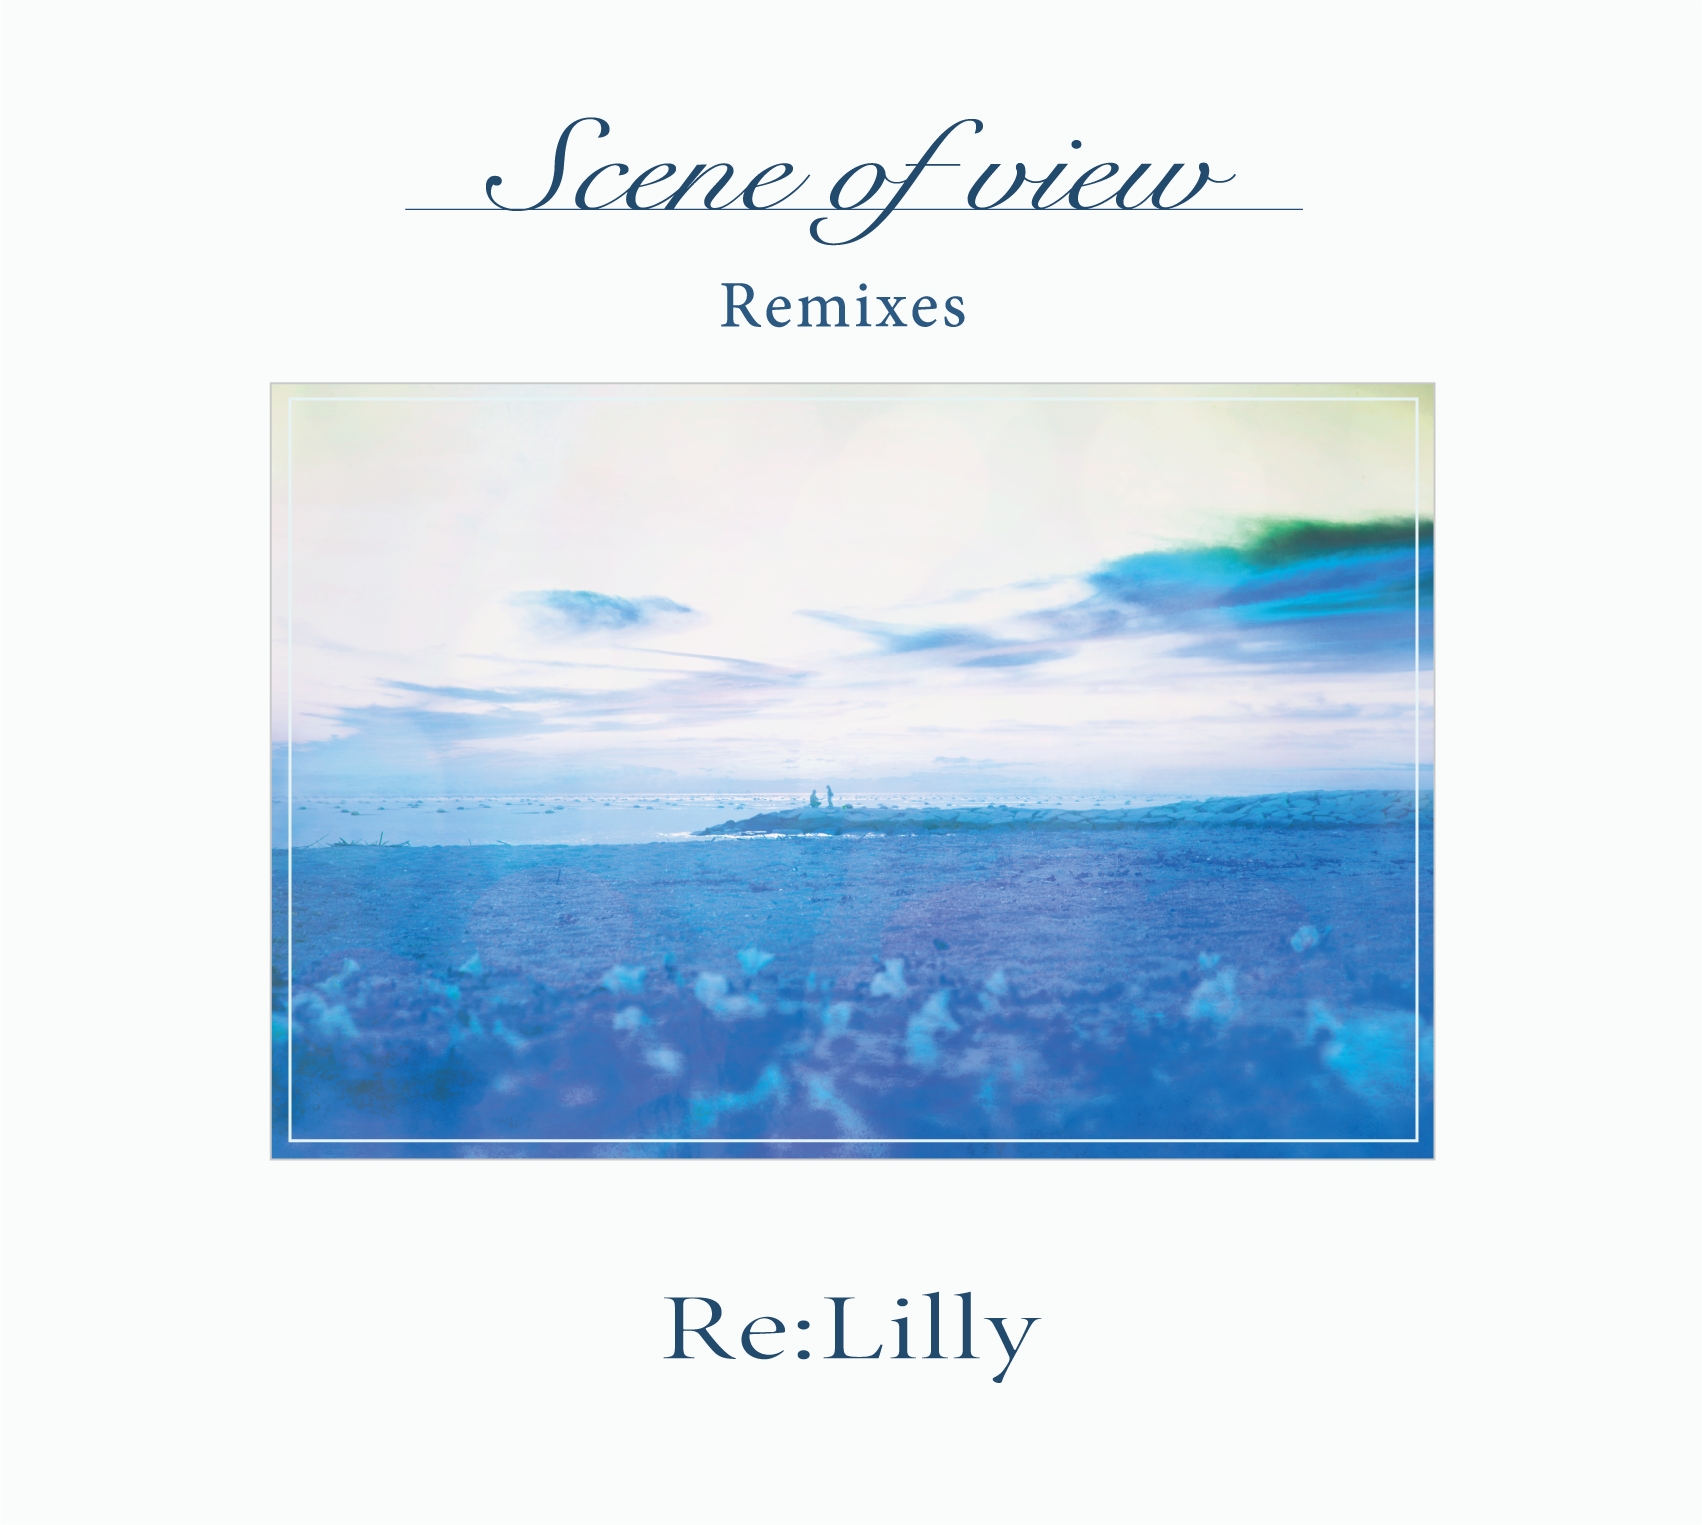 Scene of view Remixes